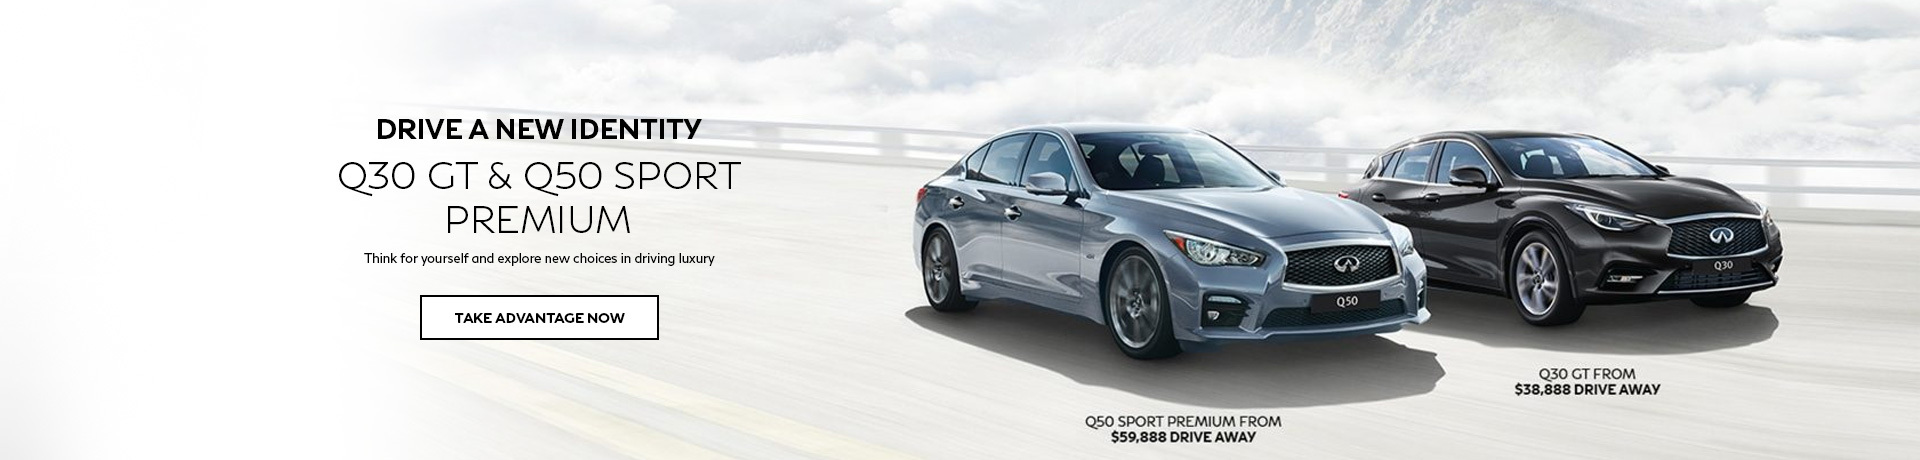 Infiniti - National Offer - Q50 Sport Premium & Q30 GT